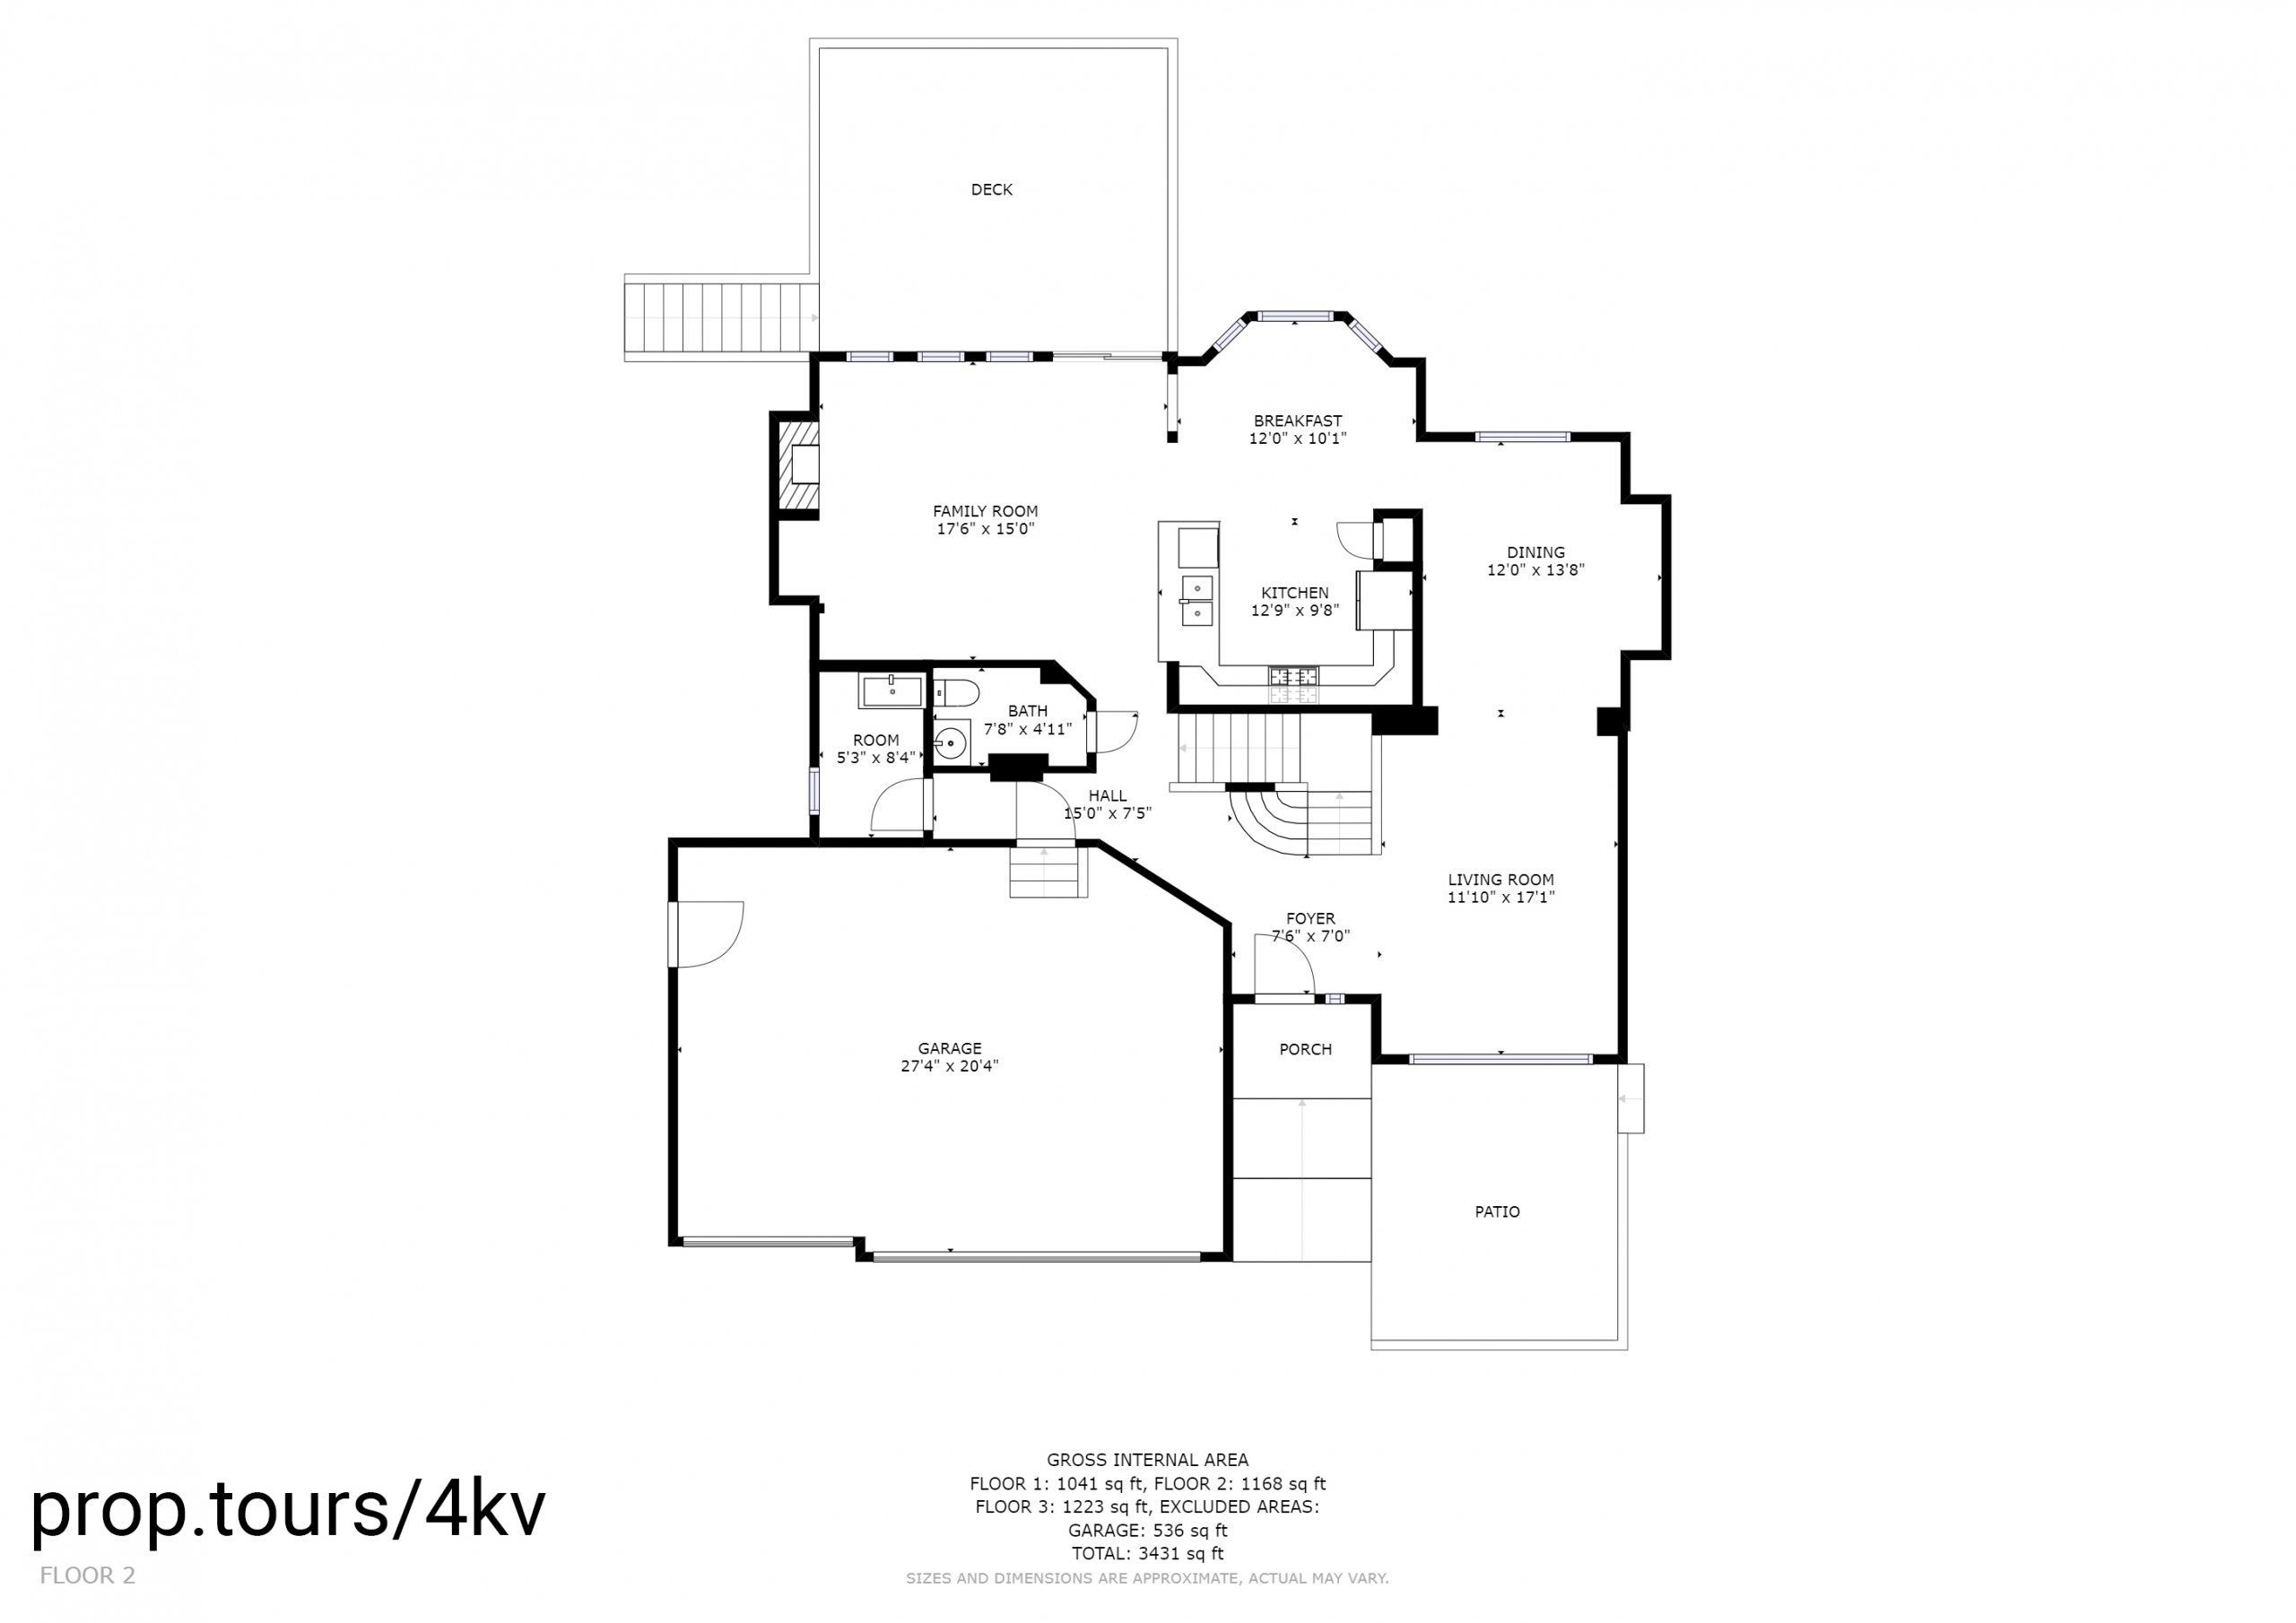 Floor Plan of Main Floor With Measurements